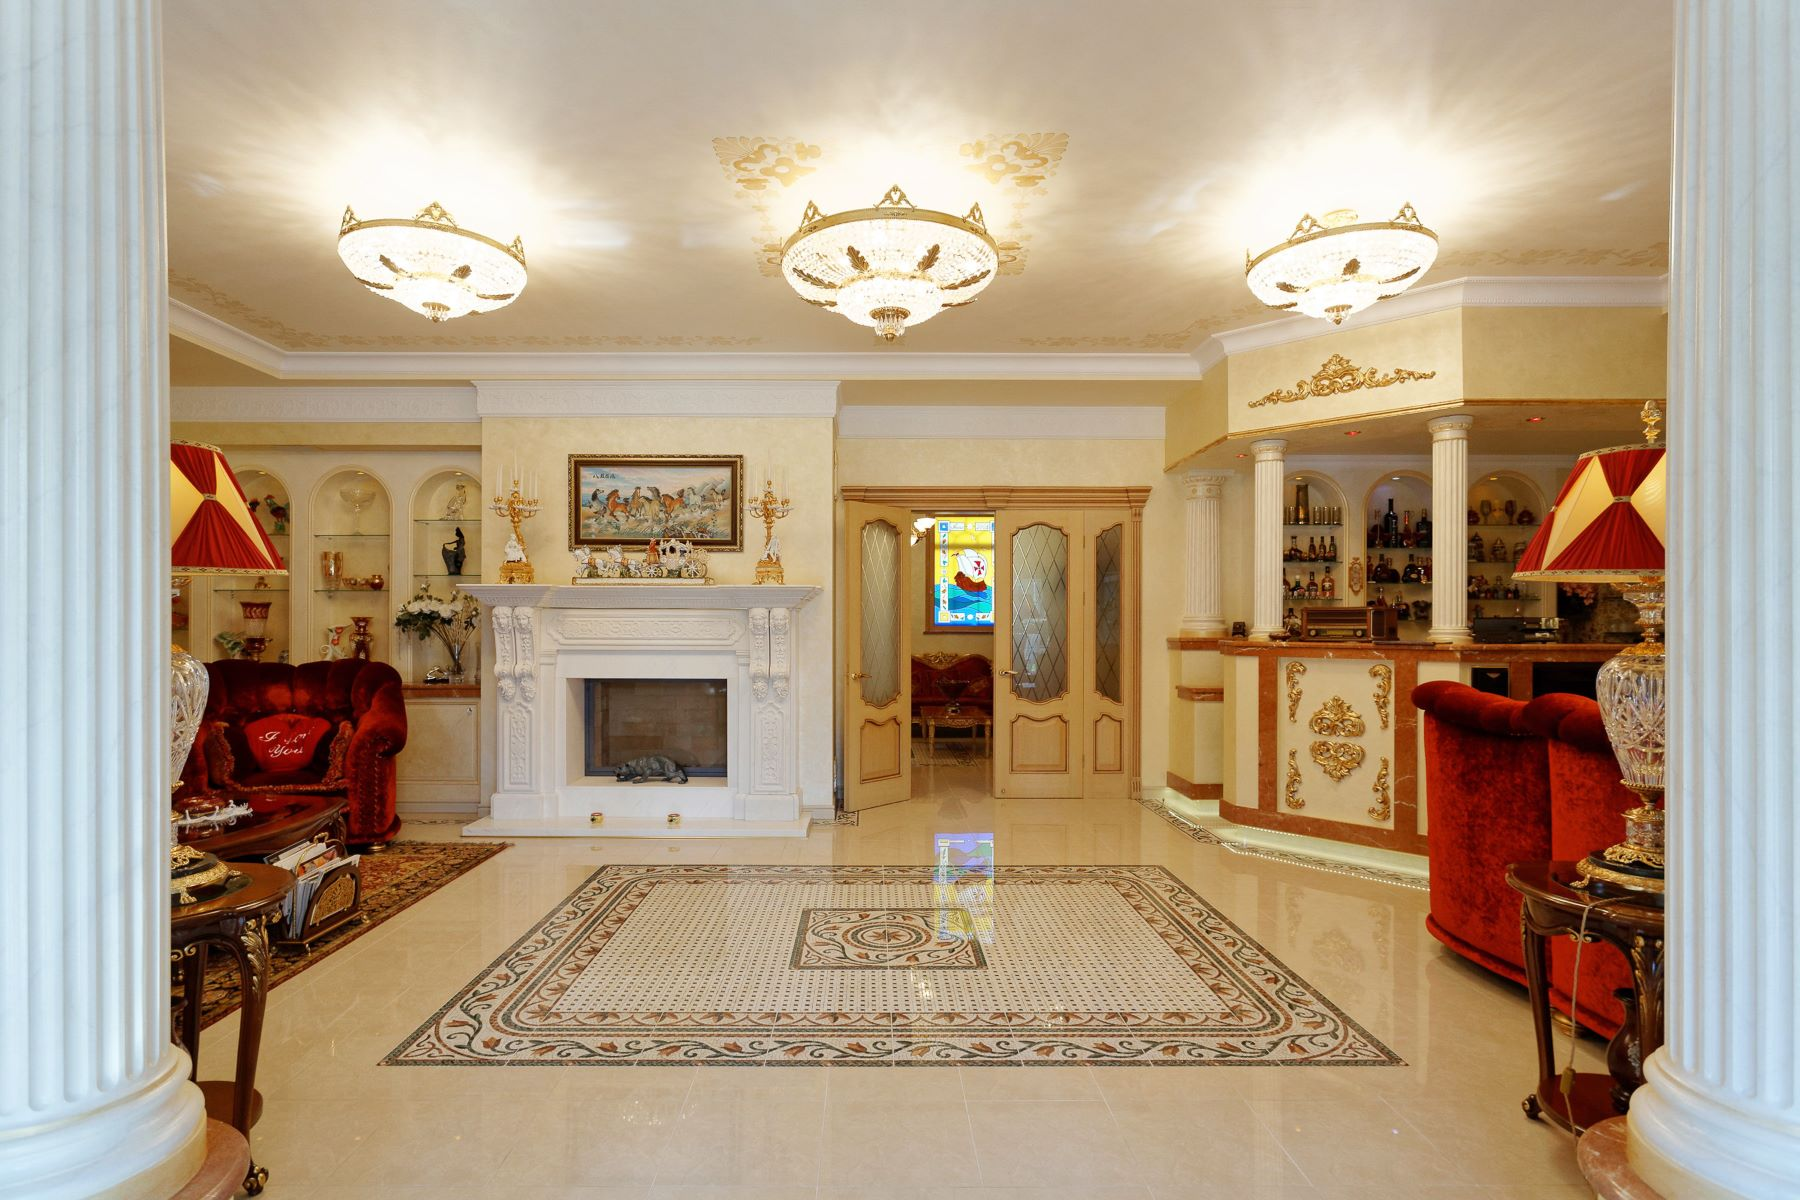 Additional photo for property listing at Magnificent villa next to the sea in Jurmala Jurmala, Rigas County Latvia